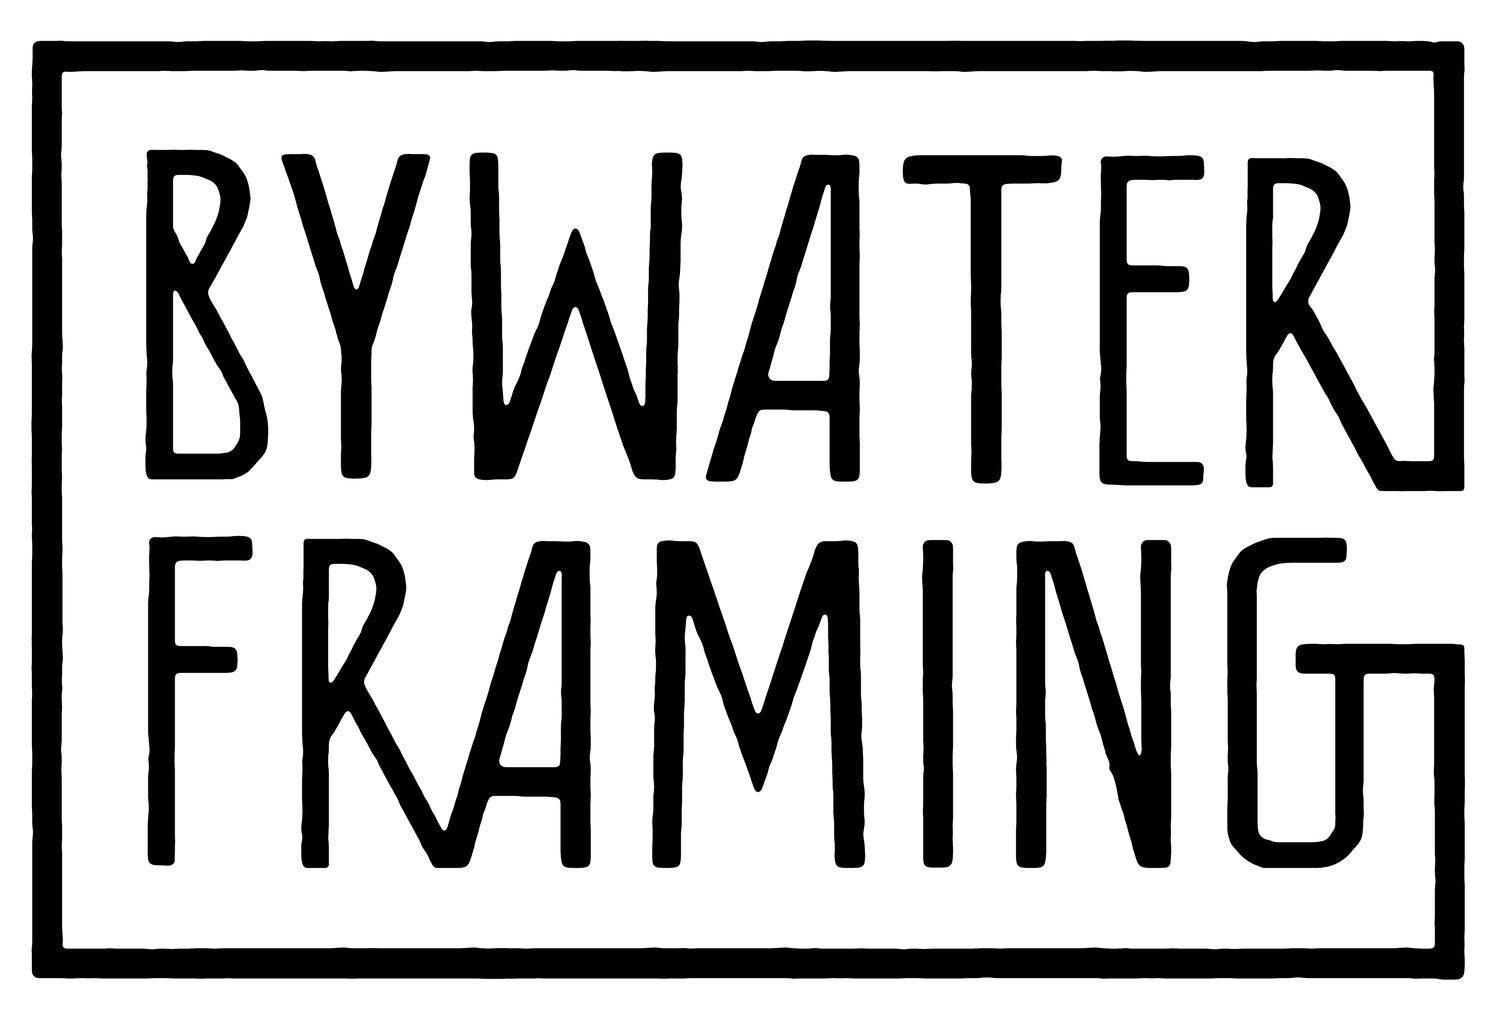 BYWATER FRAMING